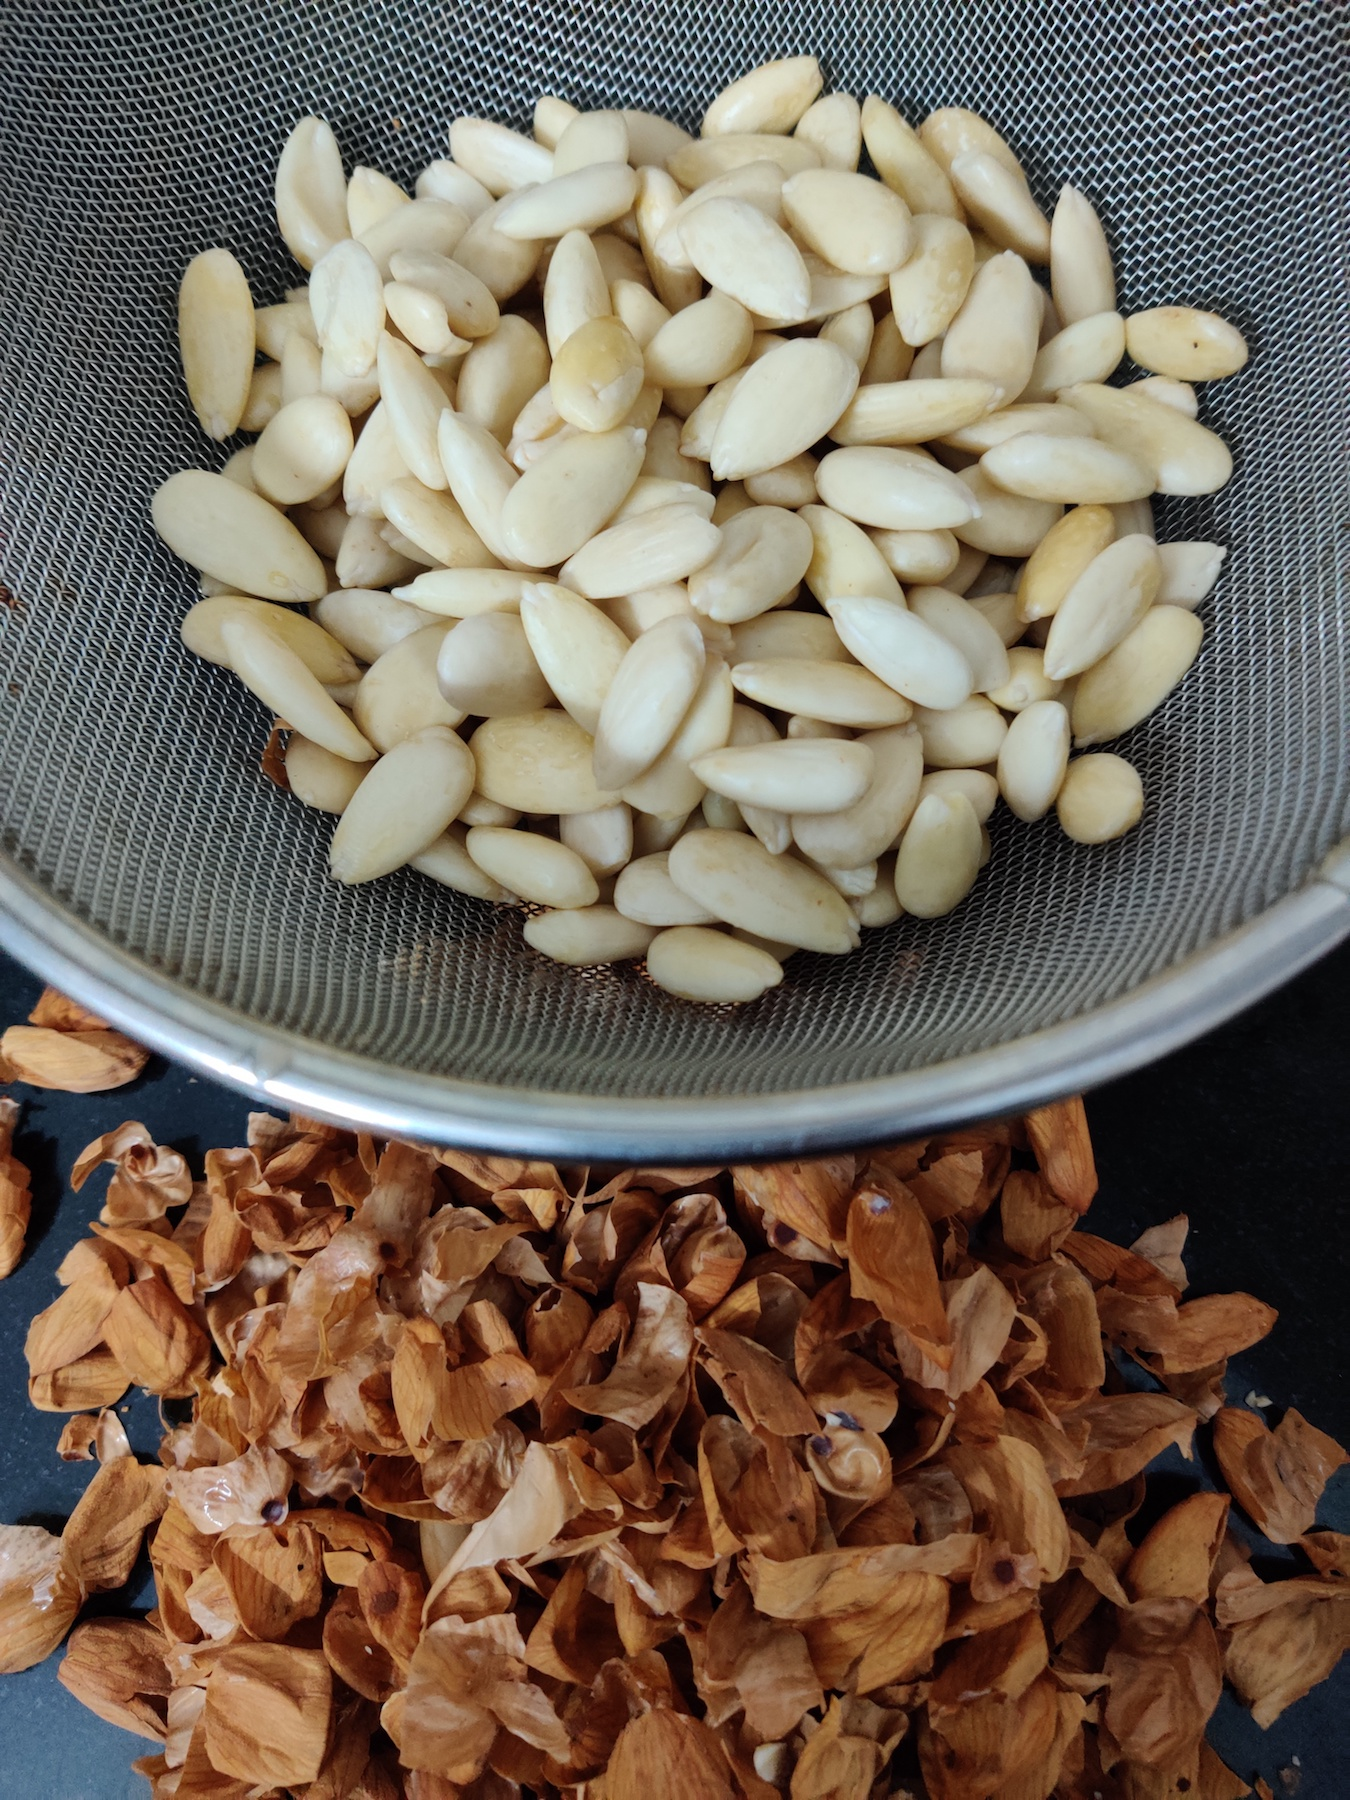 After the almonds have soaked in boiling hot water for a few minutes, the skins should come off easily.